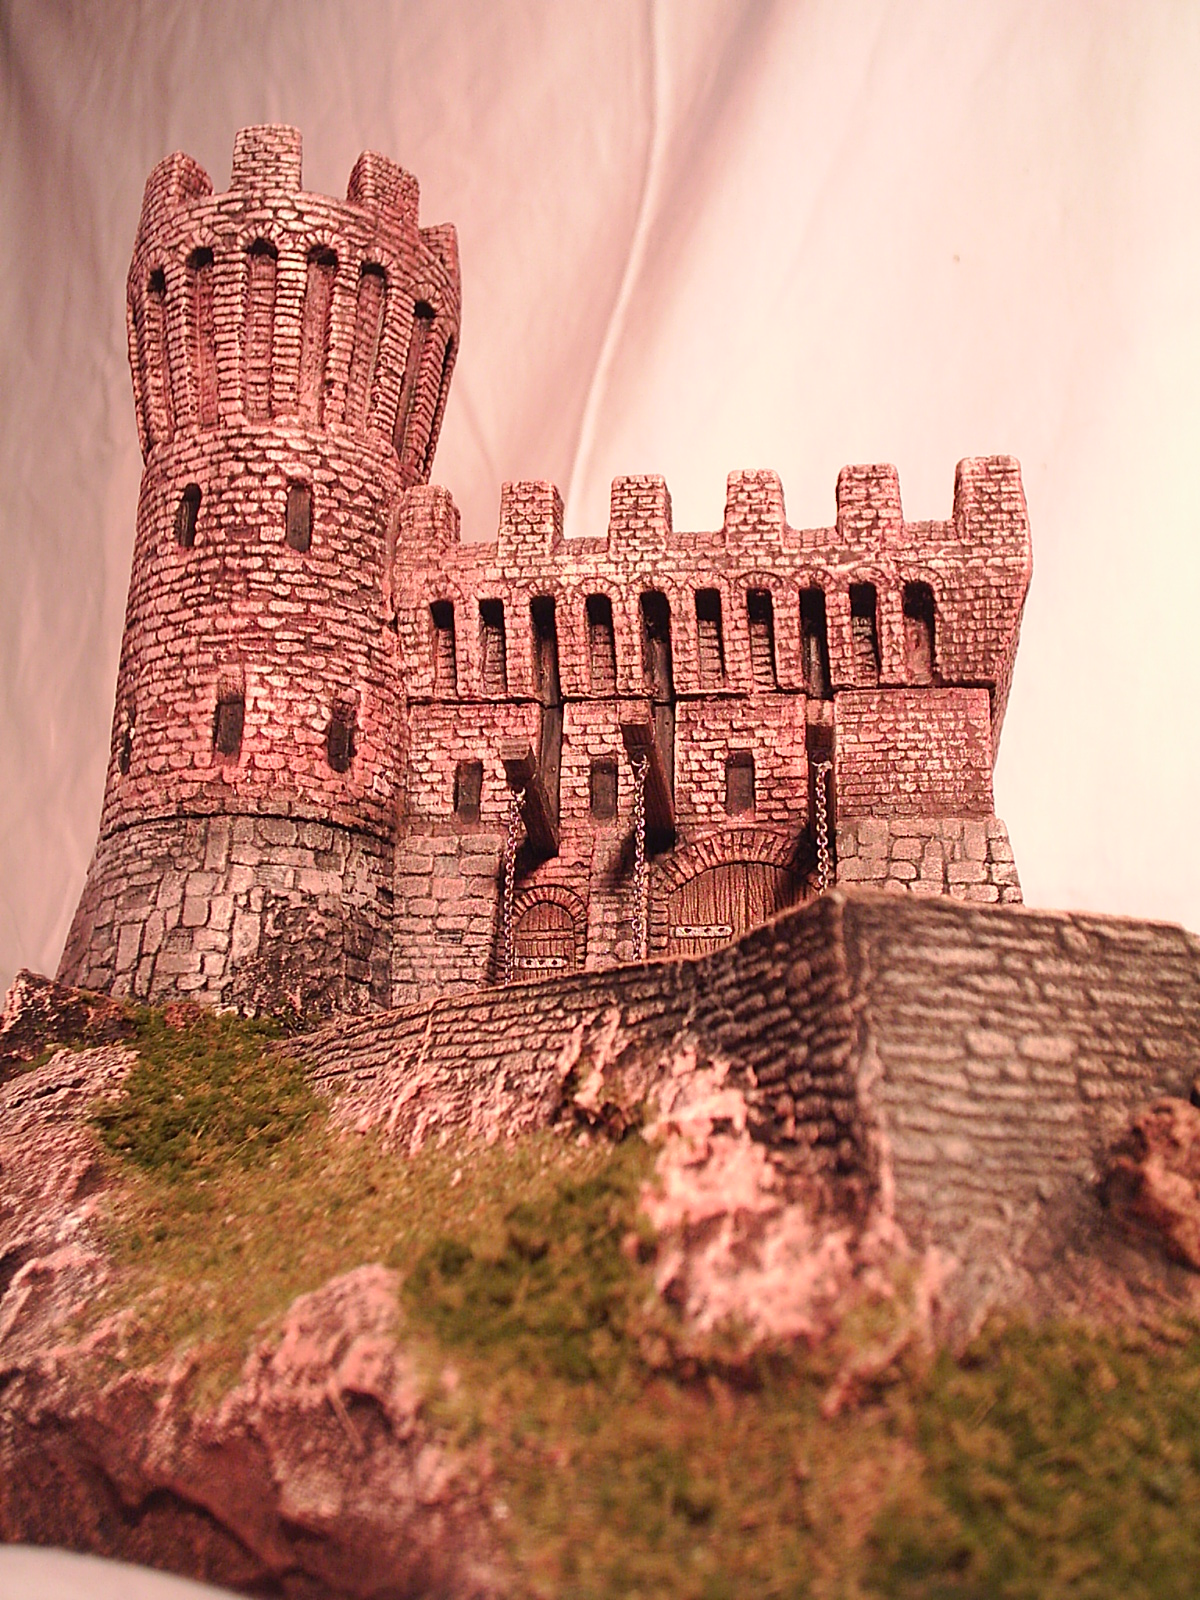 diorama castello scala 1/72 con materiale Manor House